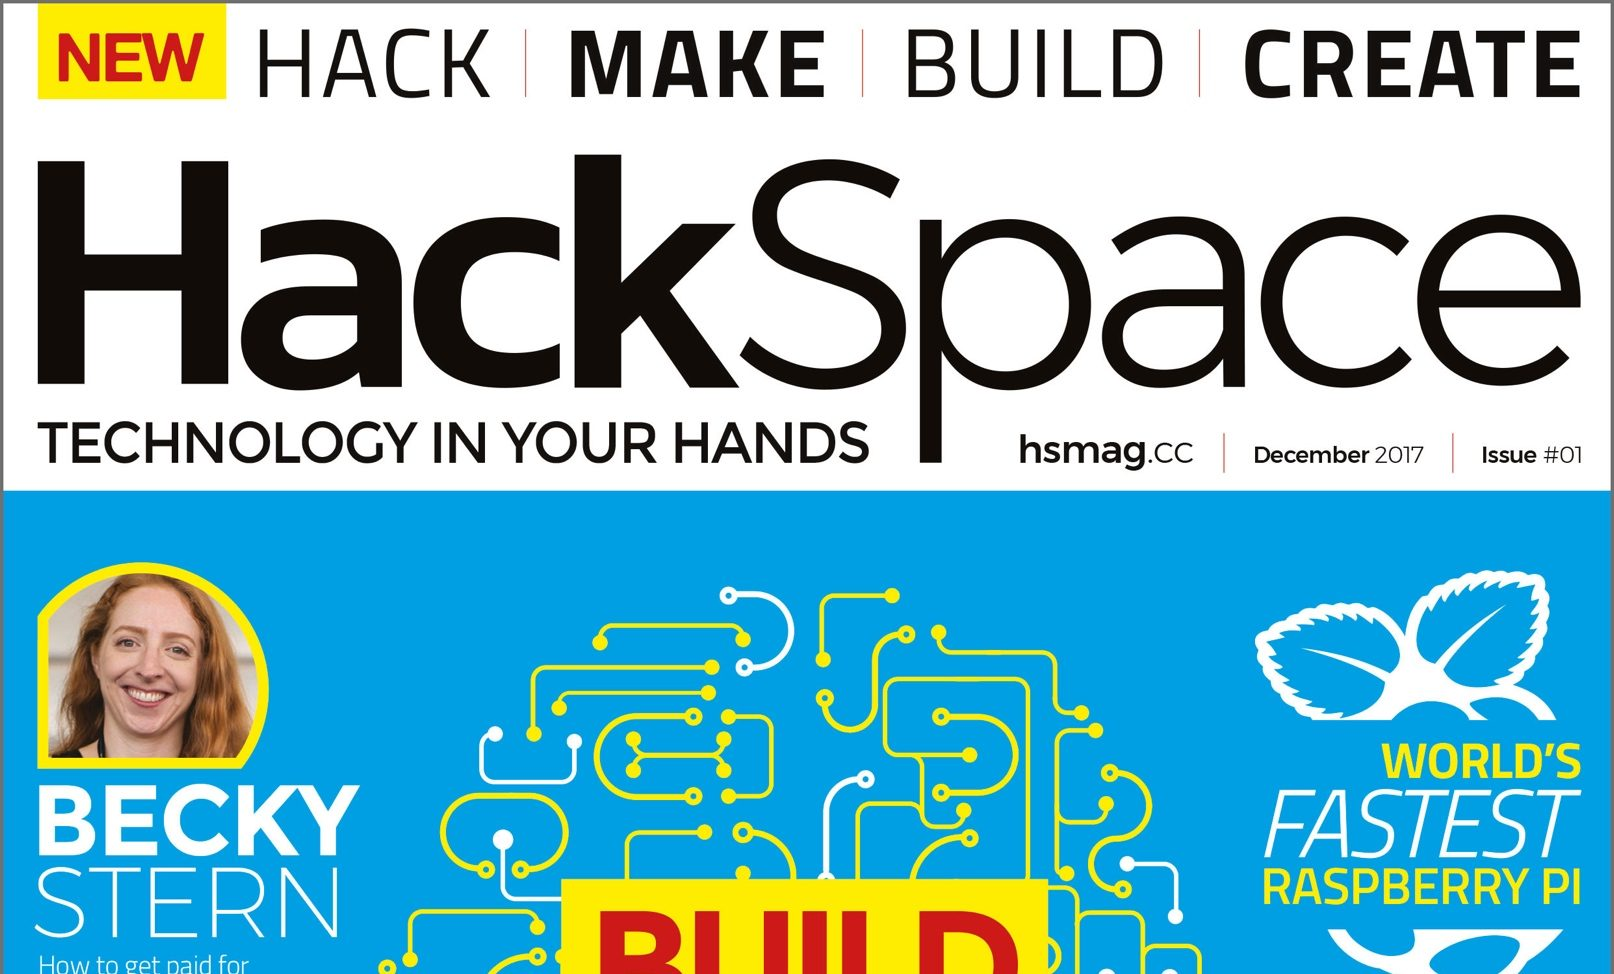 There's a new hackspace magazine out, and it's controversial